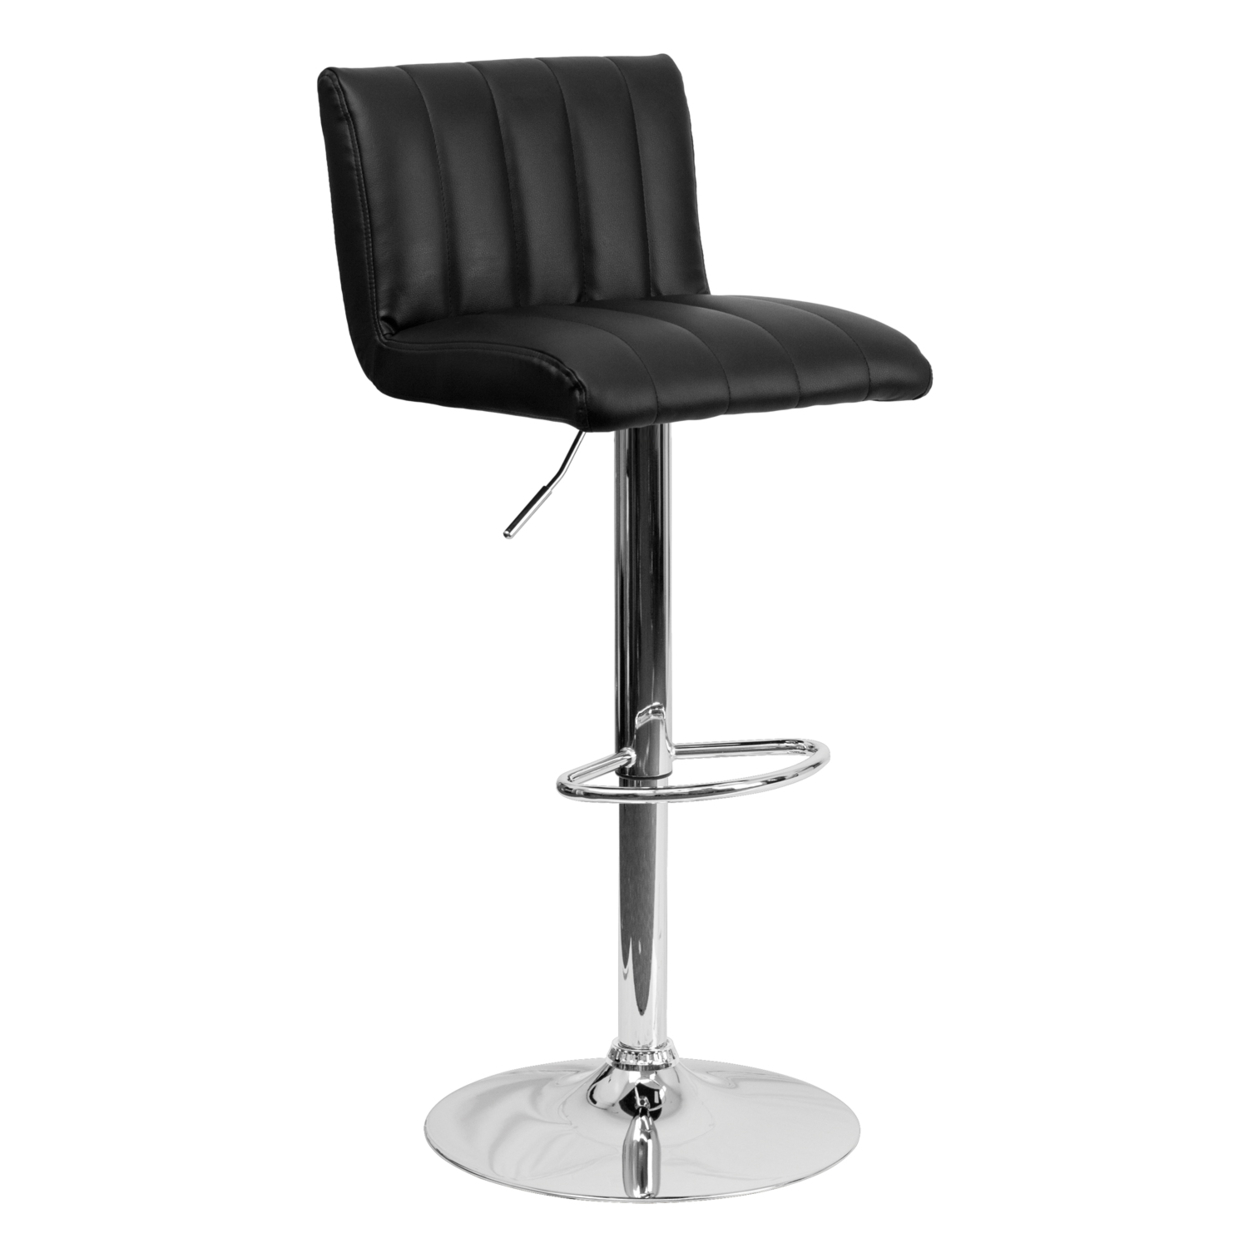 Flash Furniture Contemporary Black Vinyl Adjustable Height Bar Stool with Chrome Base [863-CH-112010-BK-GG] dhl ems 1pc 1 1p 20 psen1 1 20 8mm